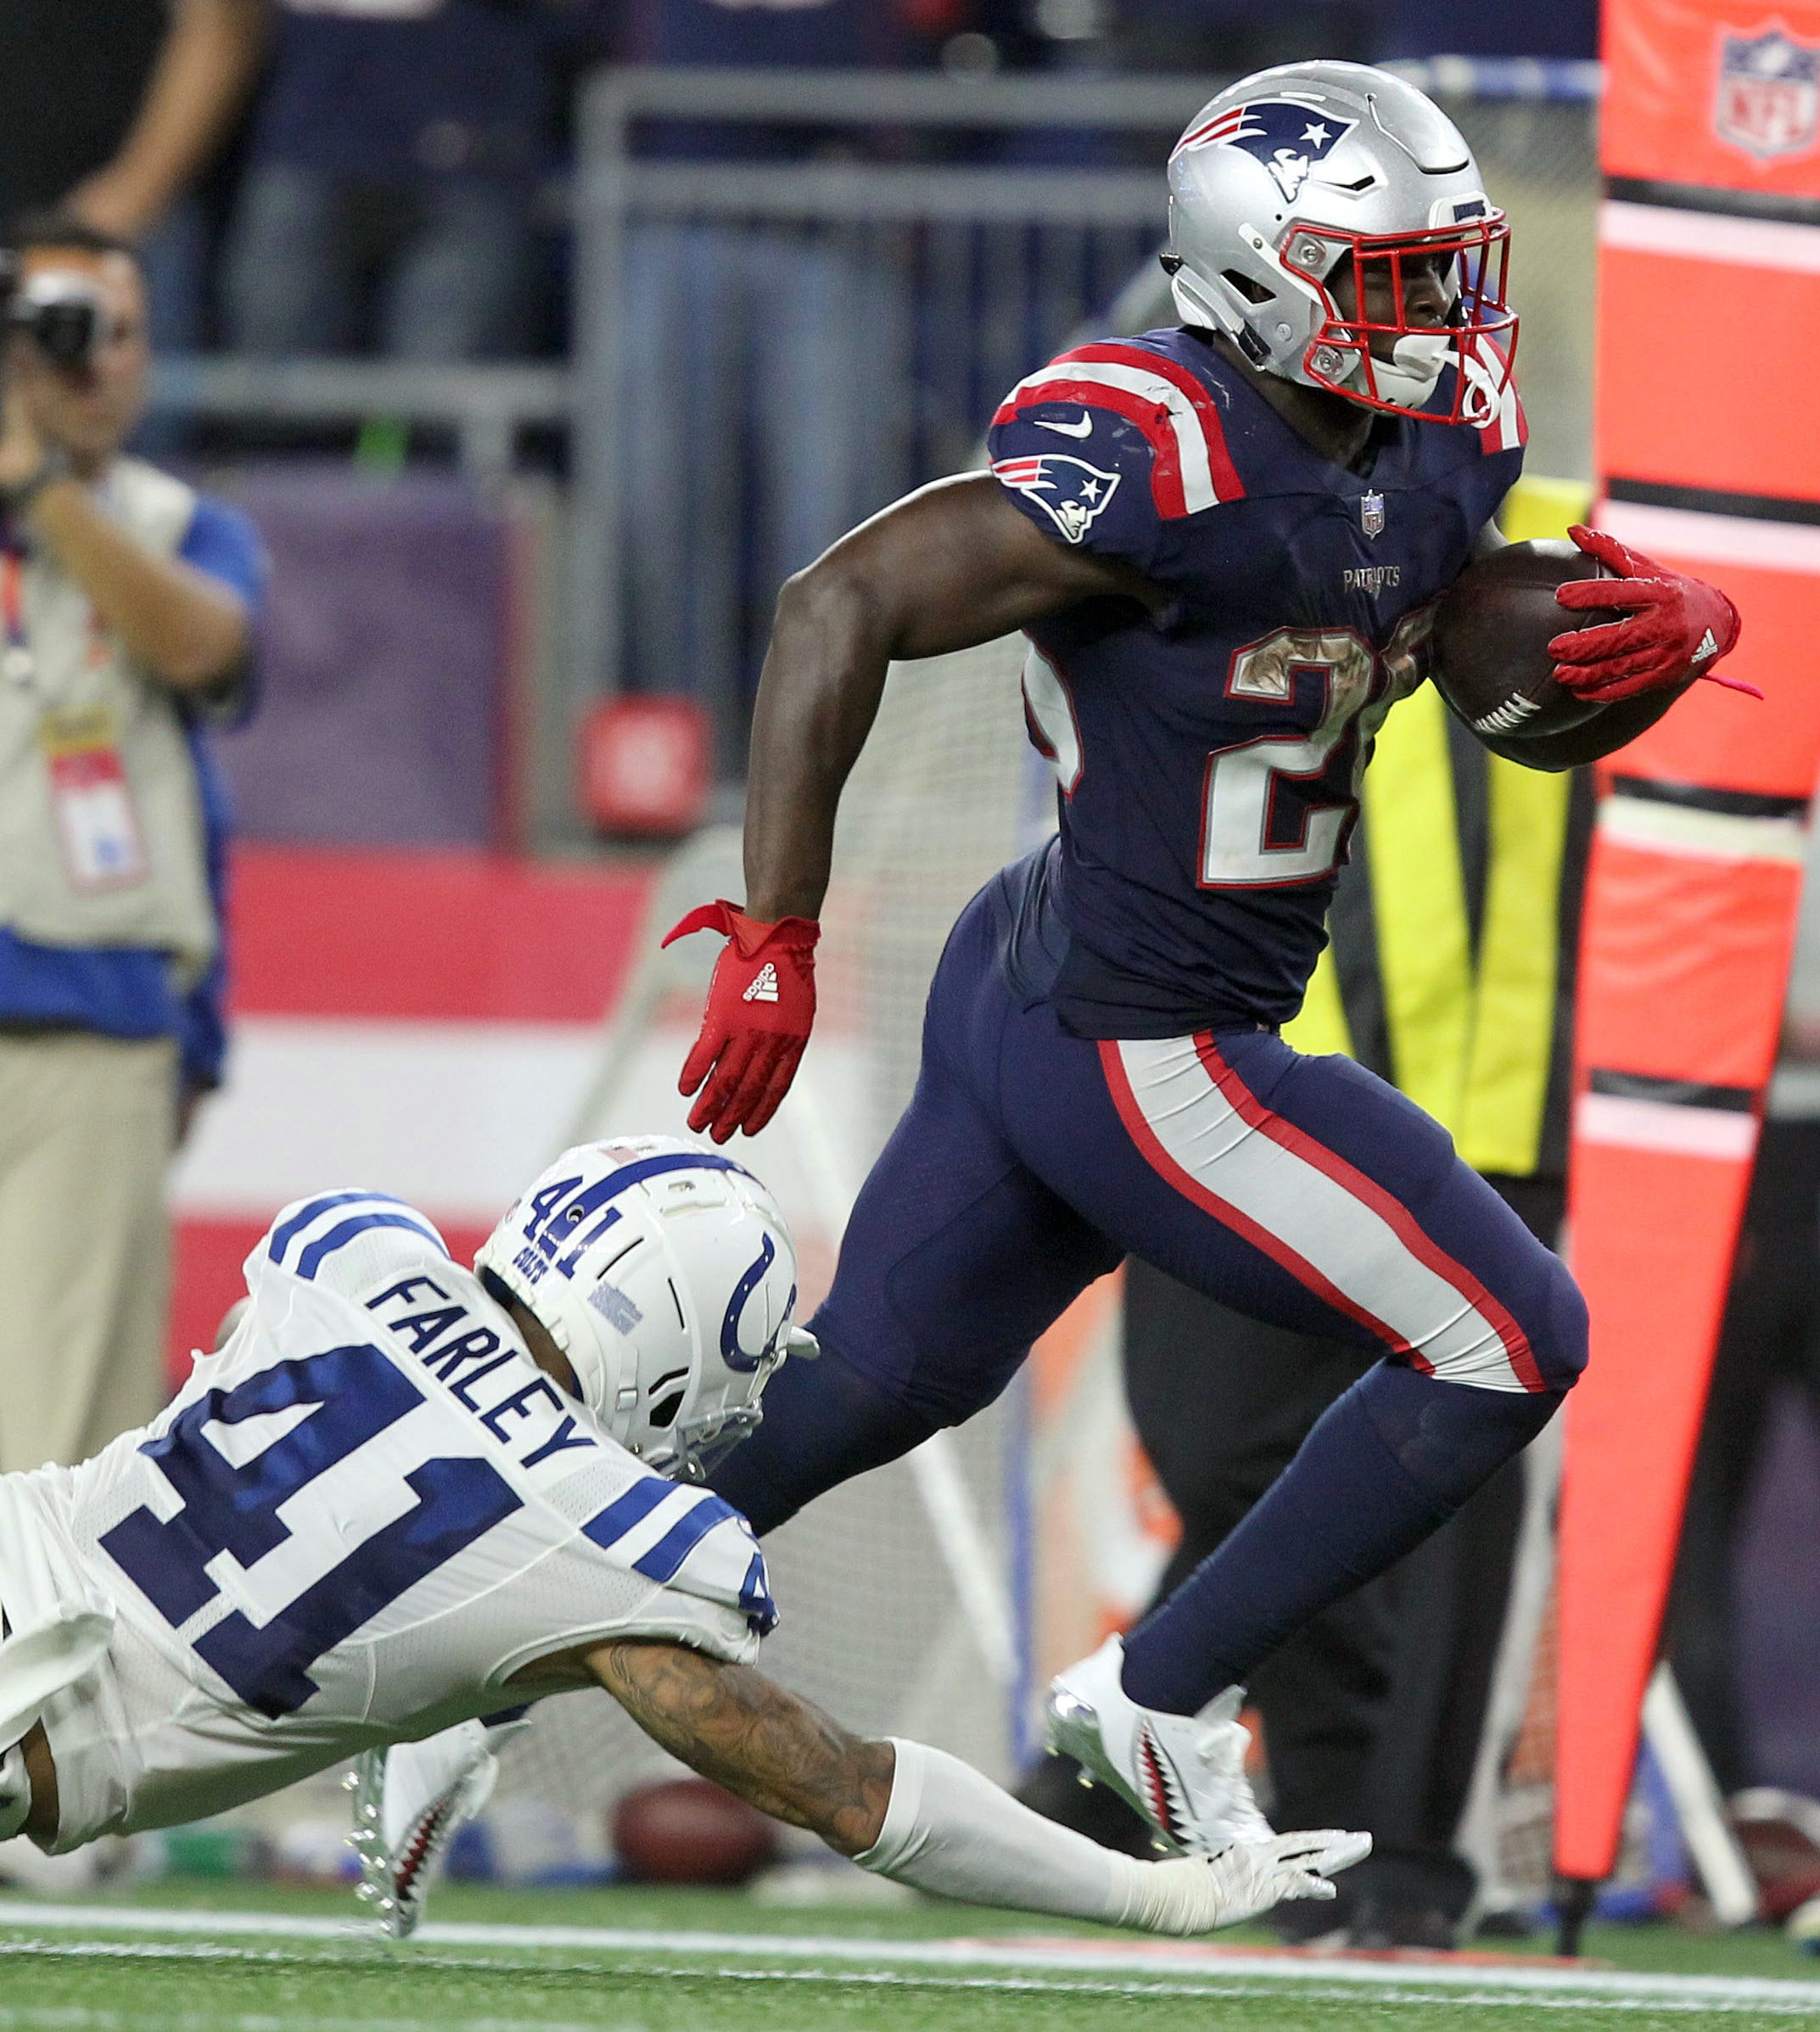 2. Patriots (4): Sony Michel has little shot of overtaking Saquon Barkley in ROY race, but he does lead all first-year backs with 80 rush yards per game.